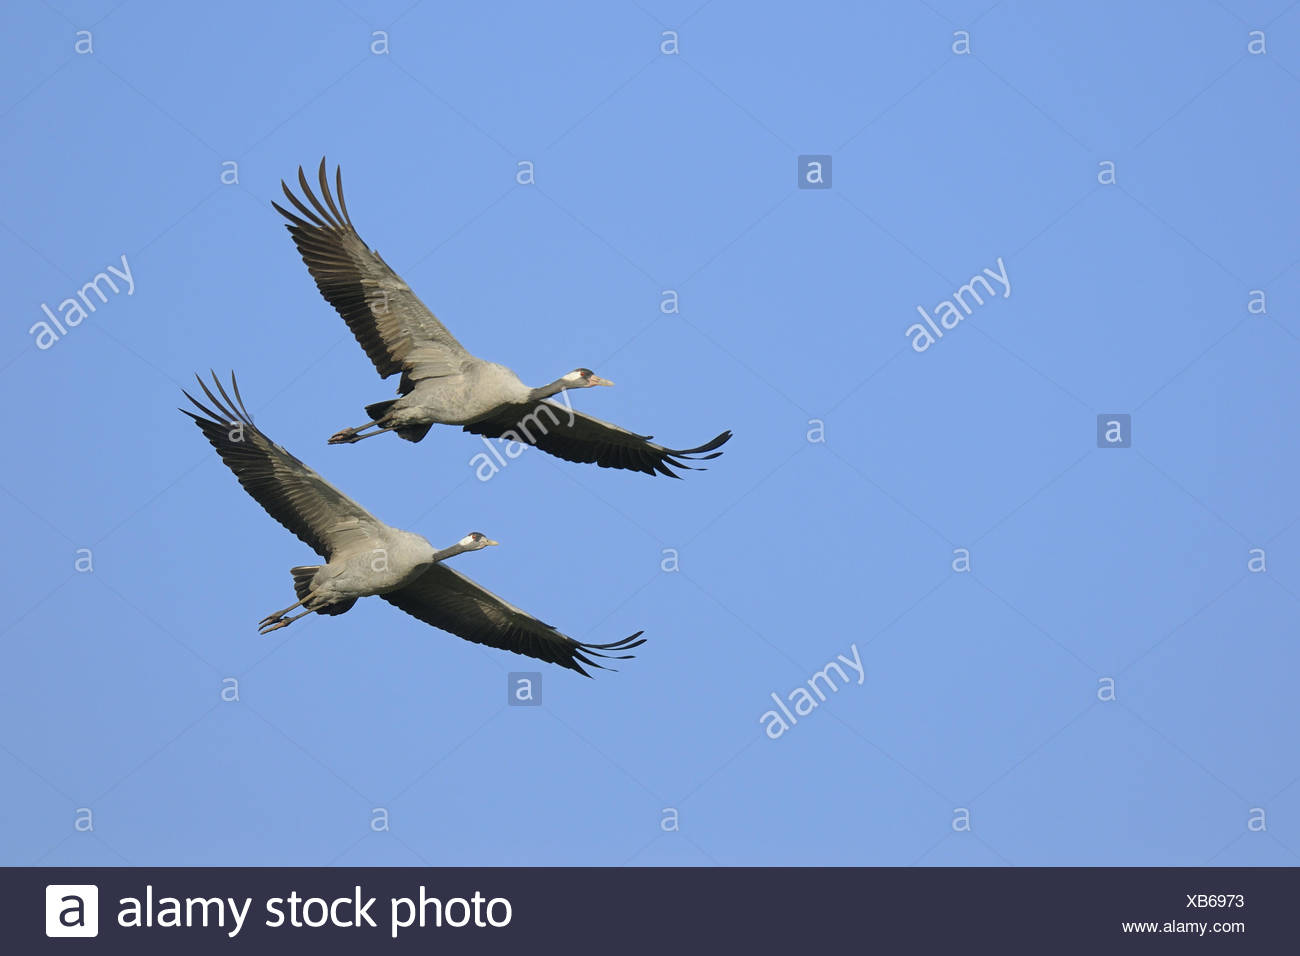 Cranes, Grus Grus, Germany Stock Photo